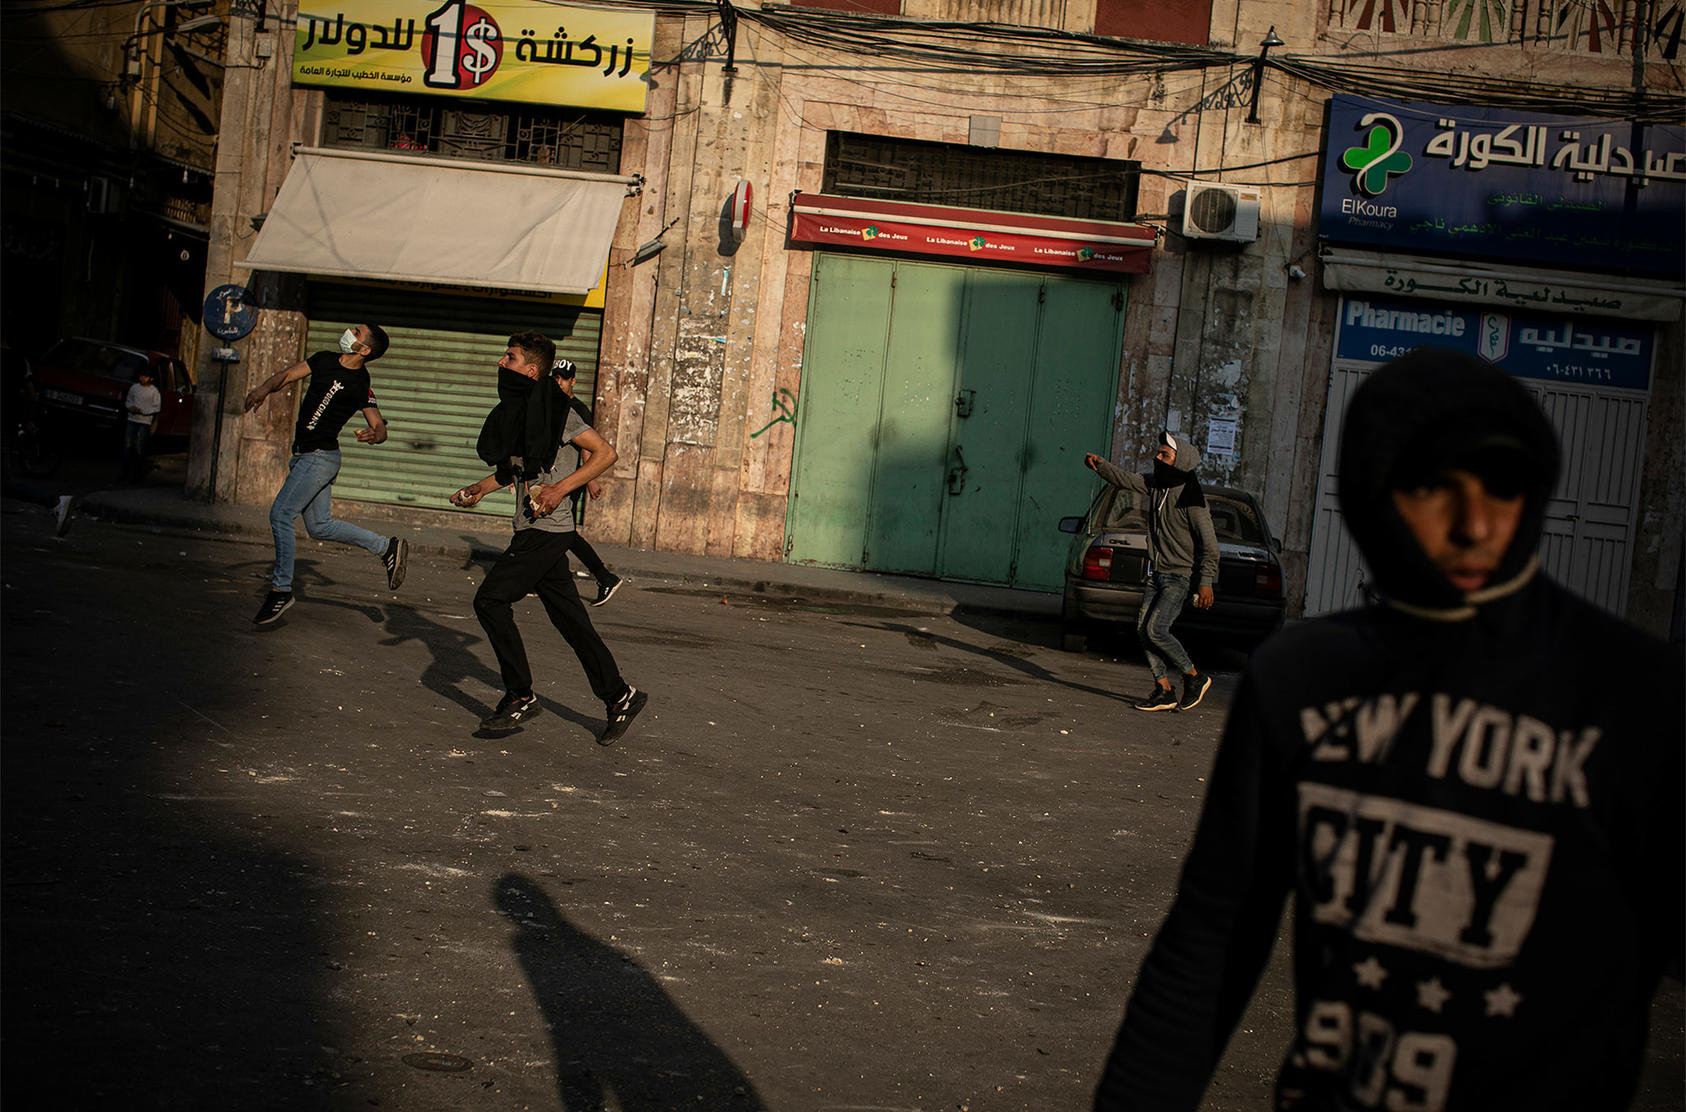 Antigovernment protesters clash with security forces in the northern city of Tripoli, Lebanon, April 29, 2020. (Diego Ibarra Sanchez/The New York Times)